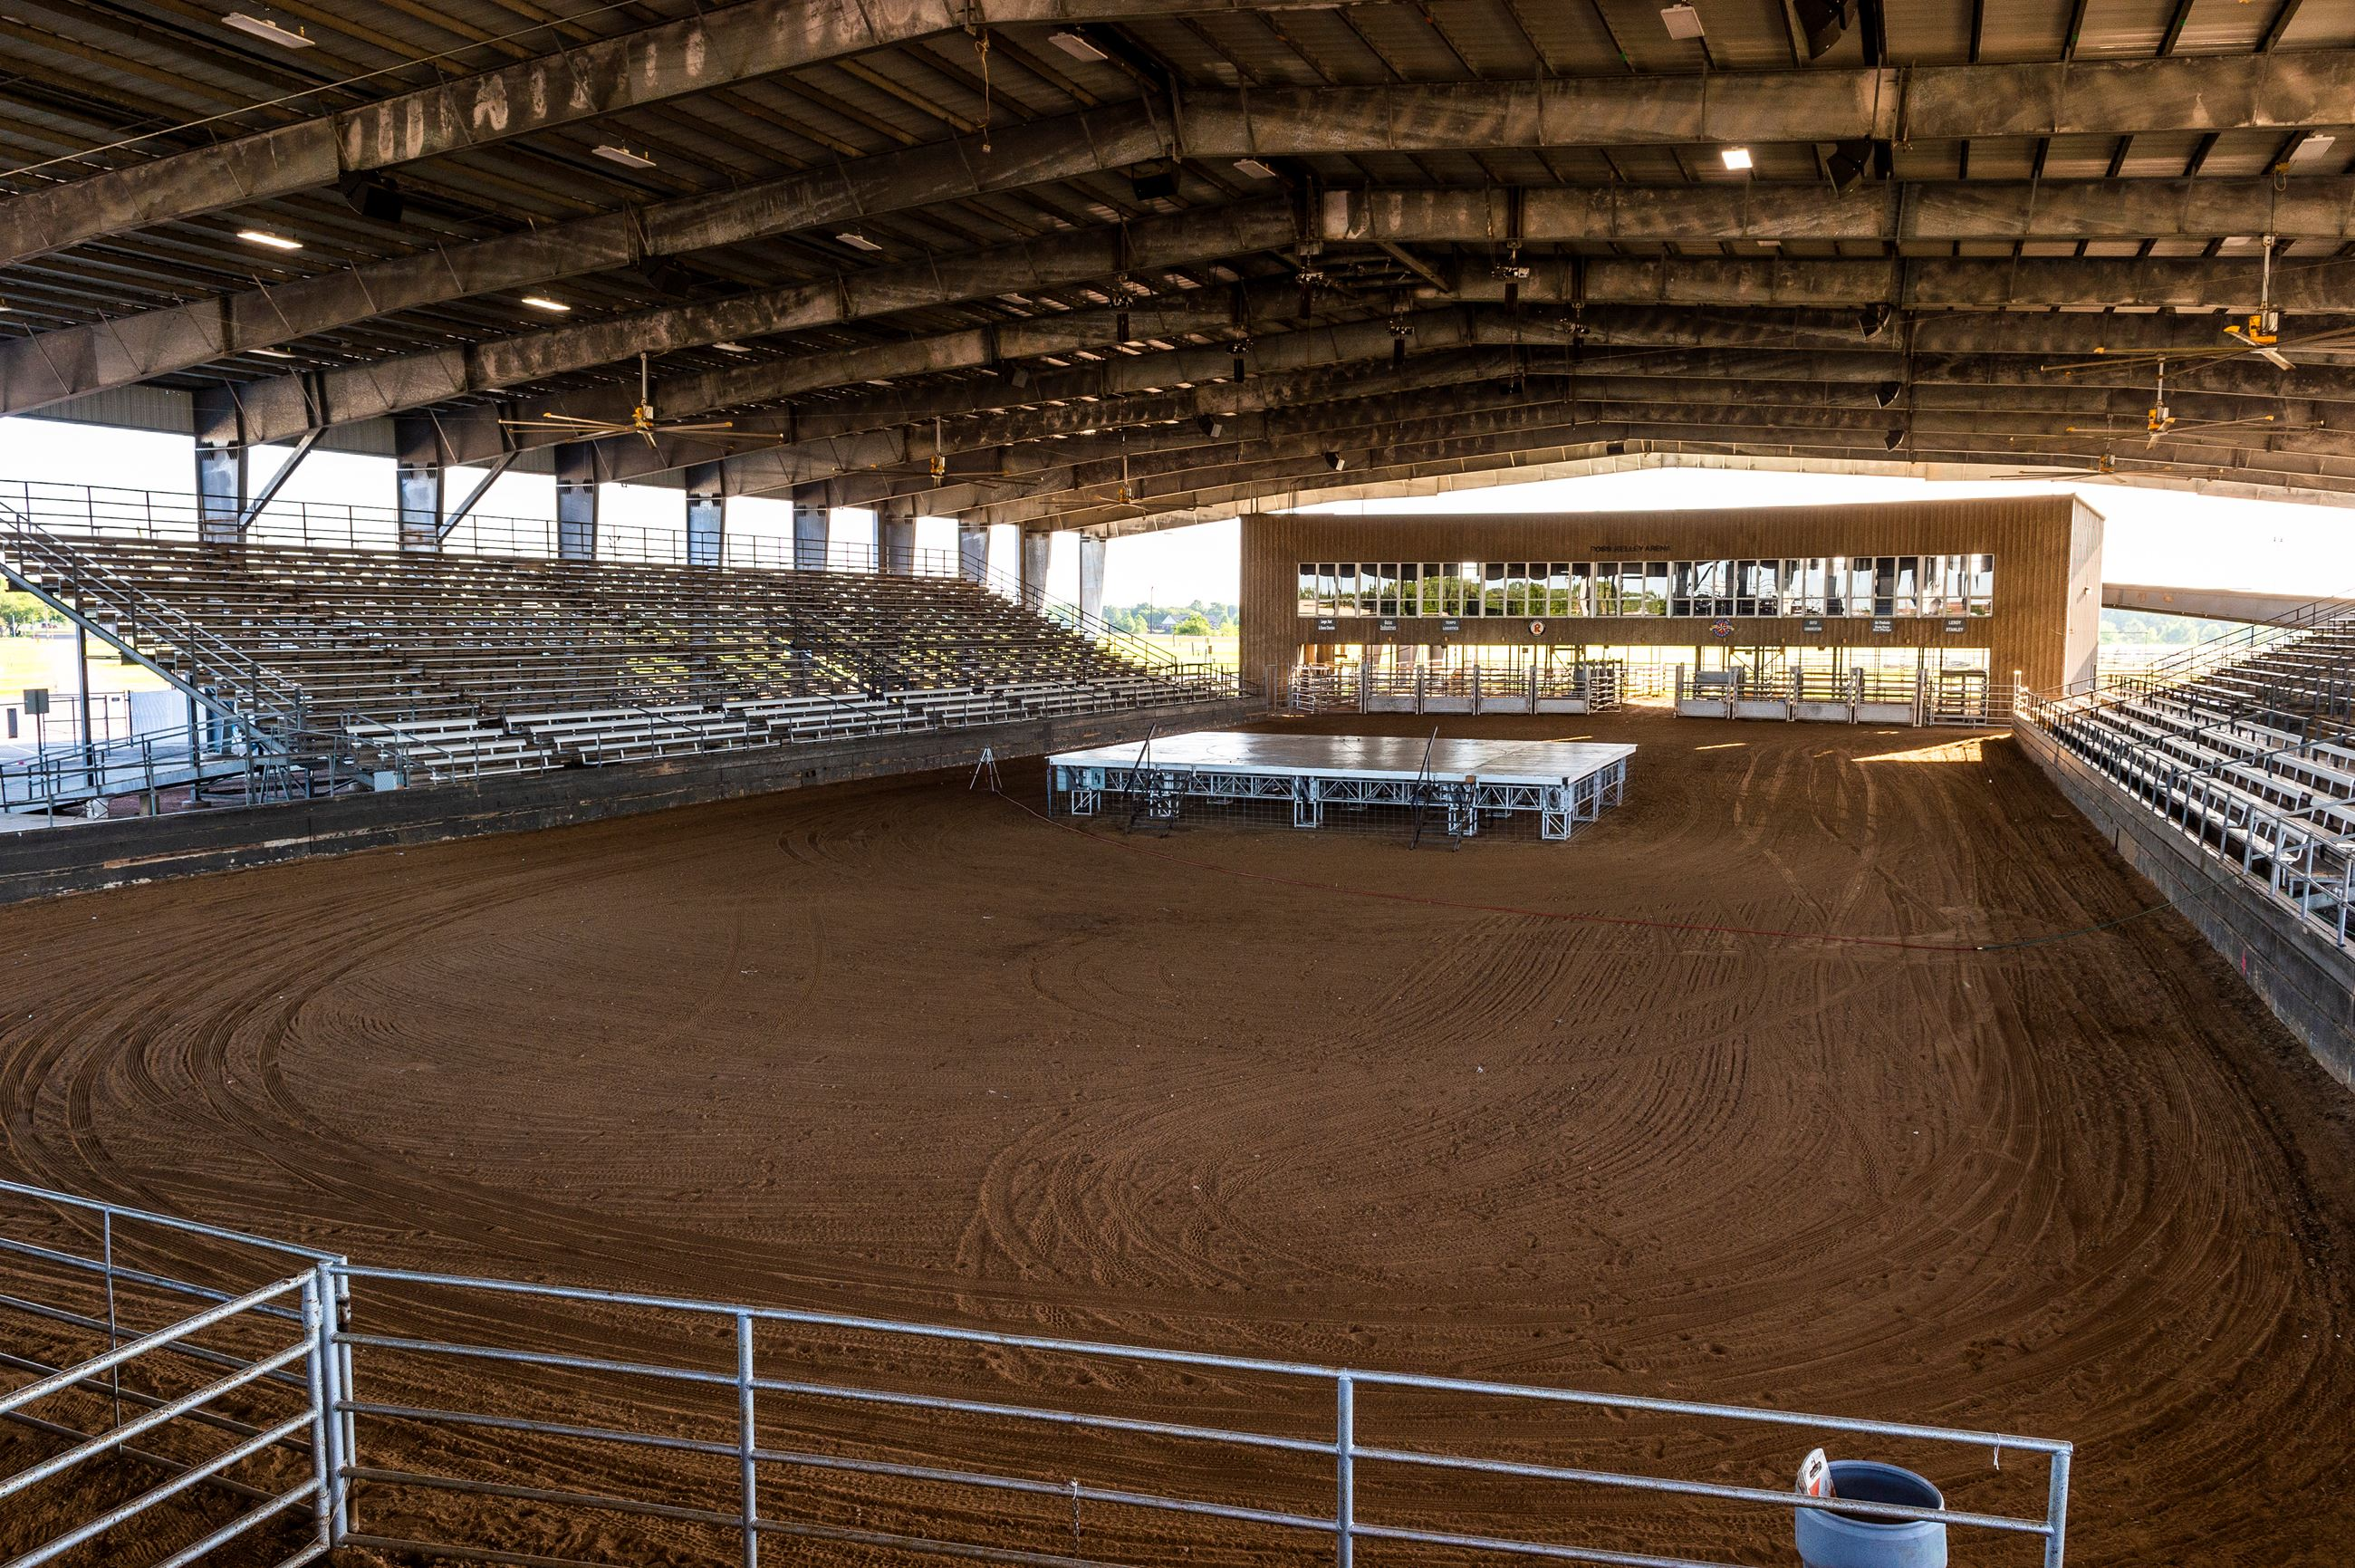 Pasadena Convention Center and Fairgrounds Rodeo Arena